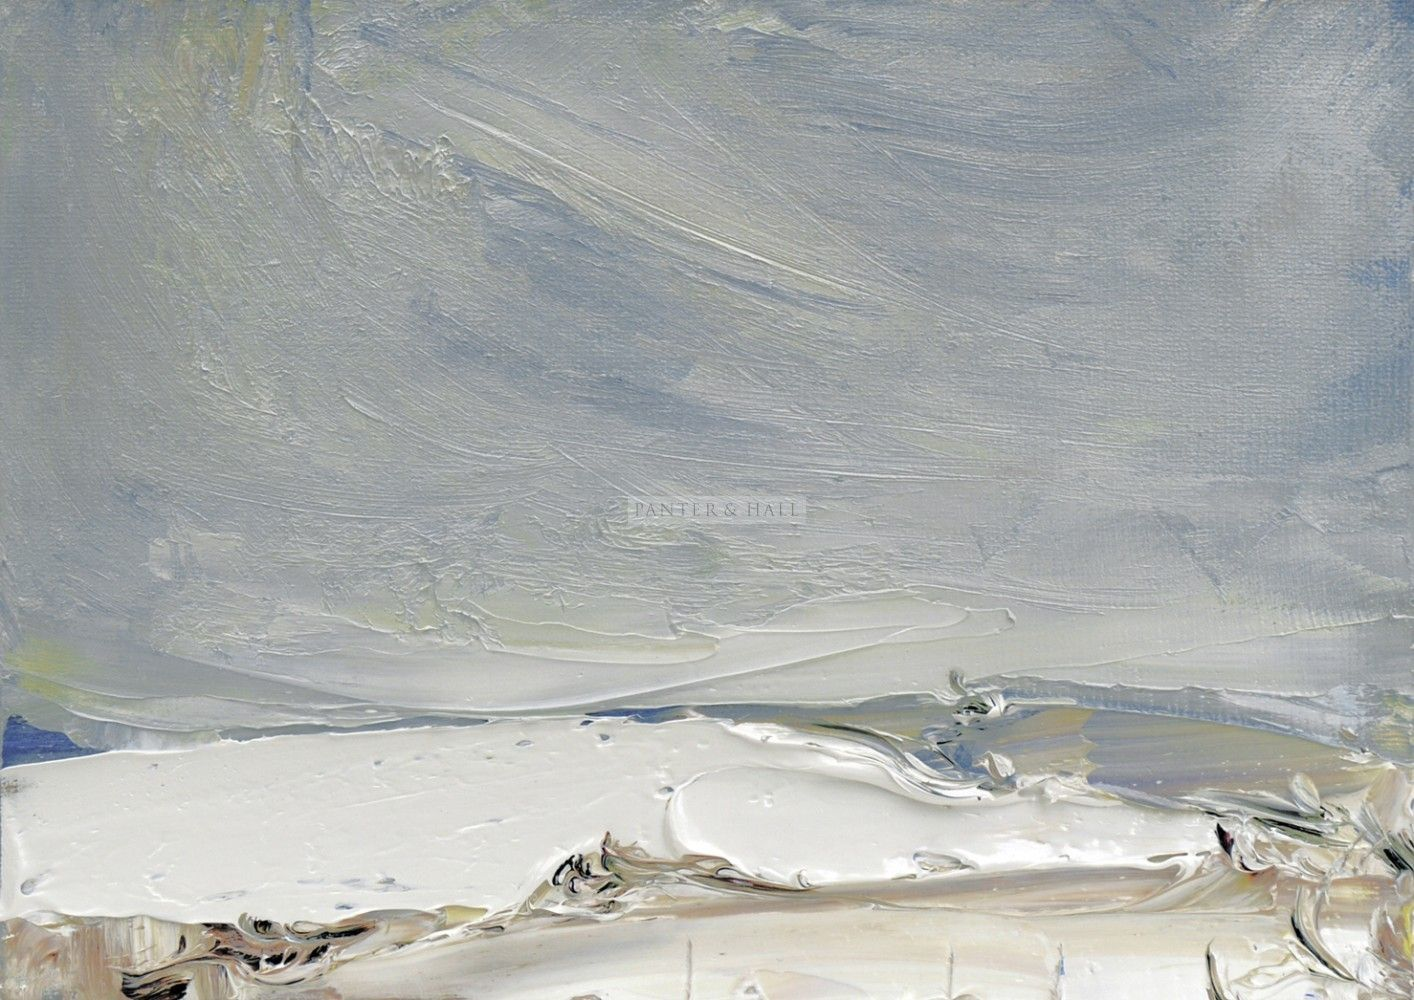 Panter & Hall: Oona Campbell: Snow Fields I, Dorset